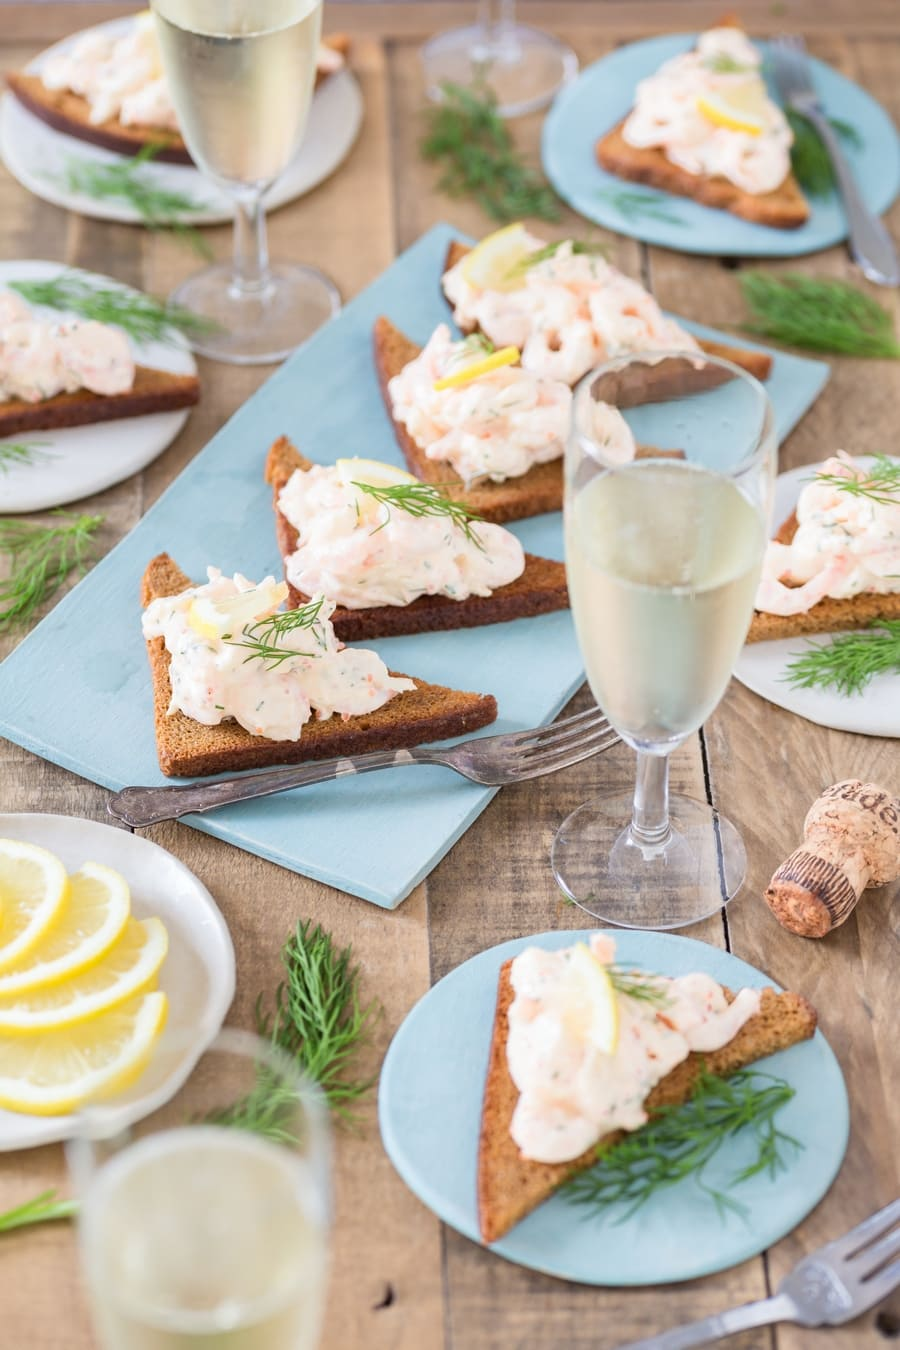 Skagenröra shrimp salad on rye toast, glasses of prosecco around.